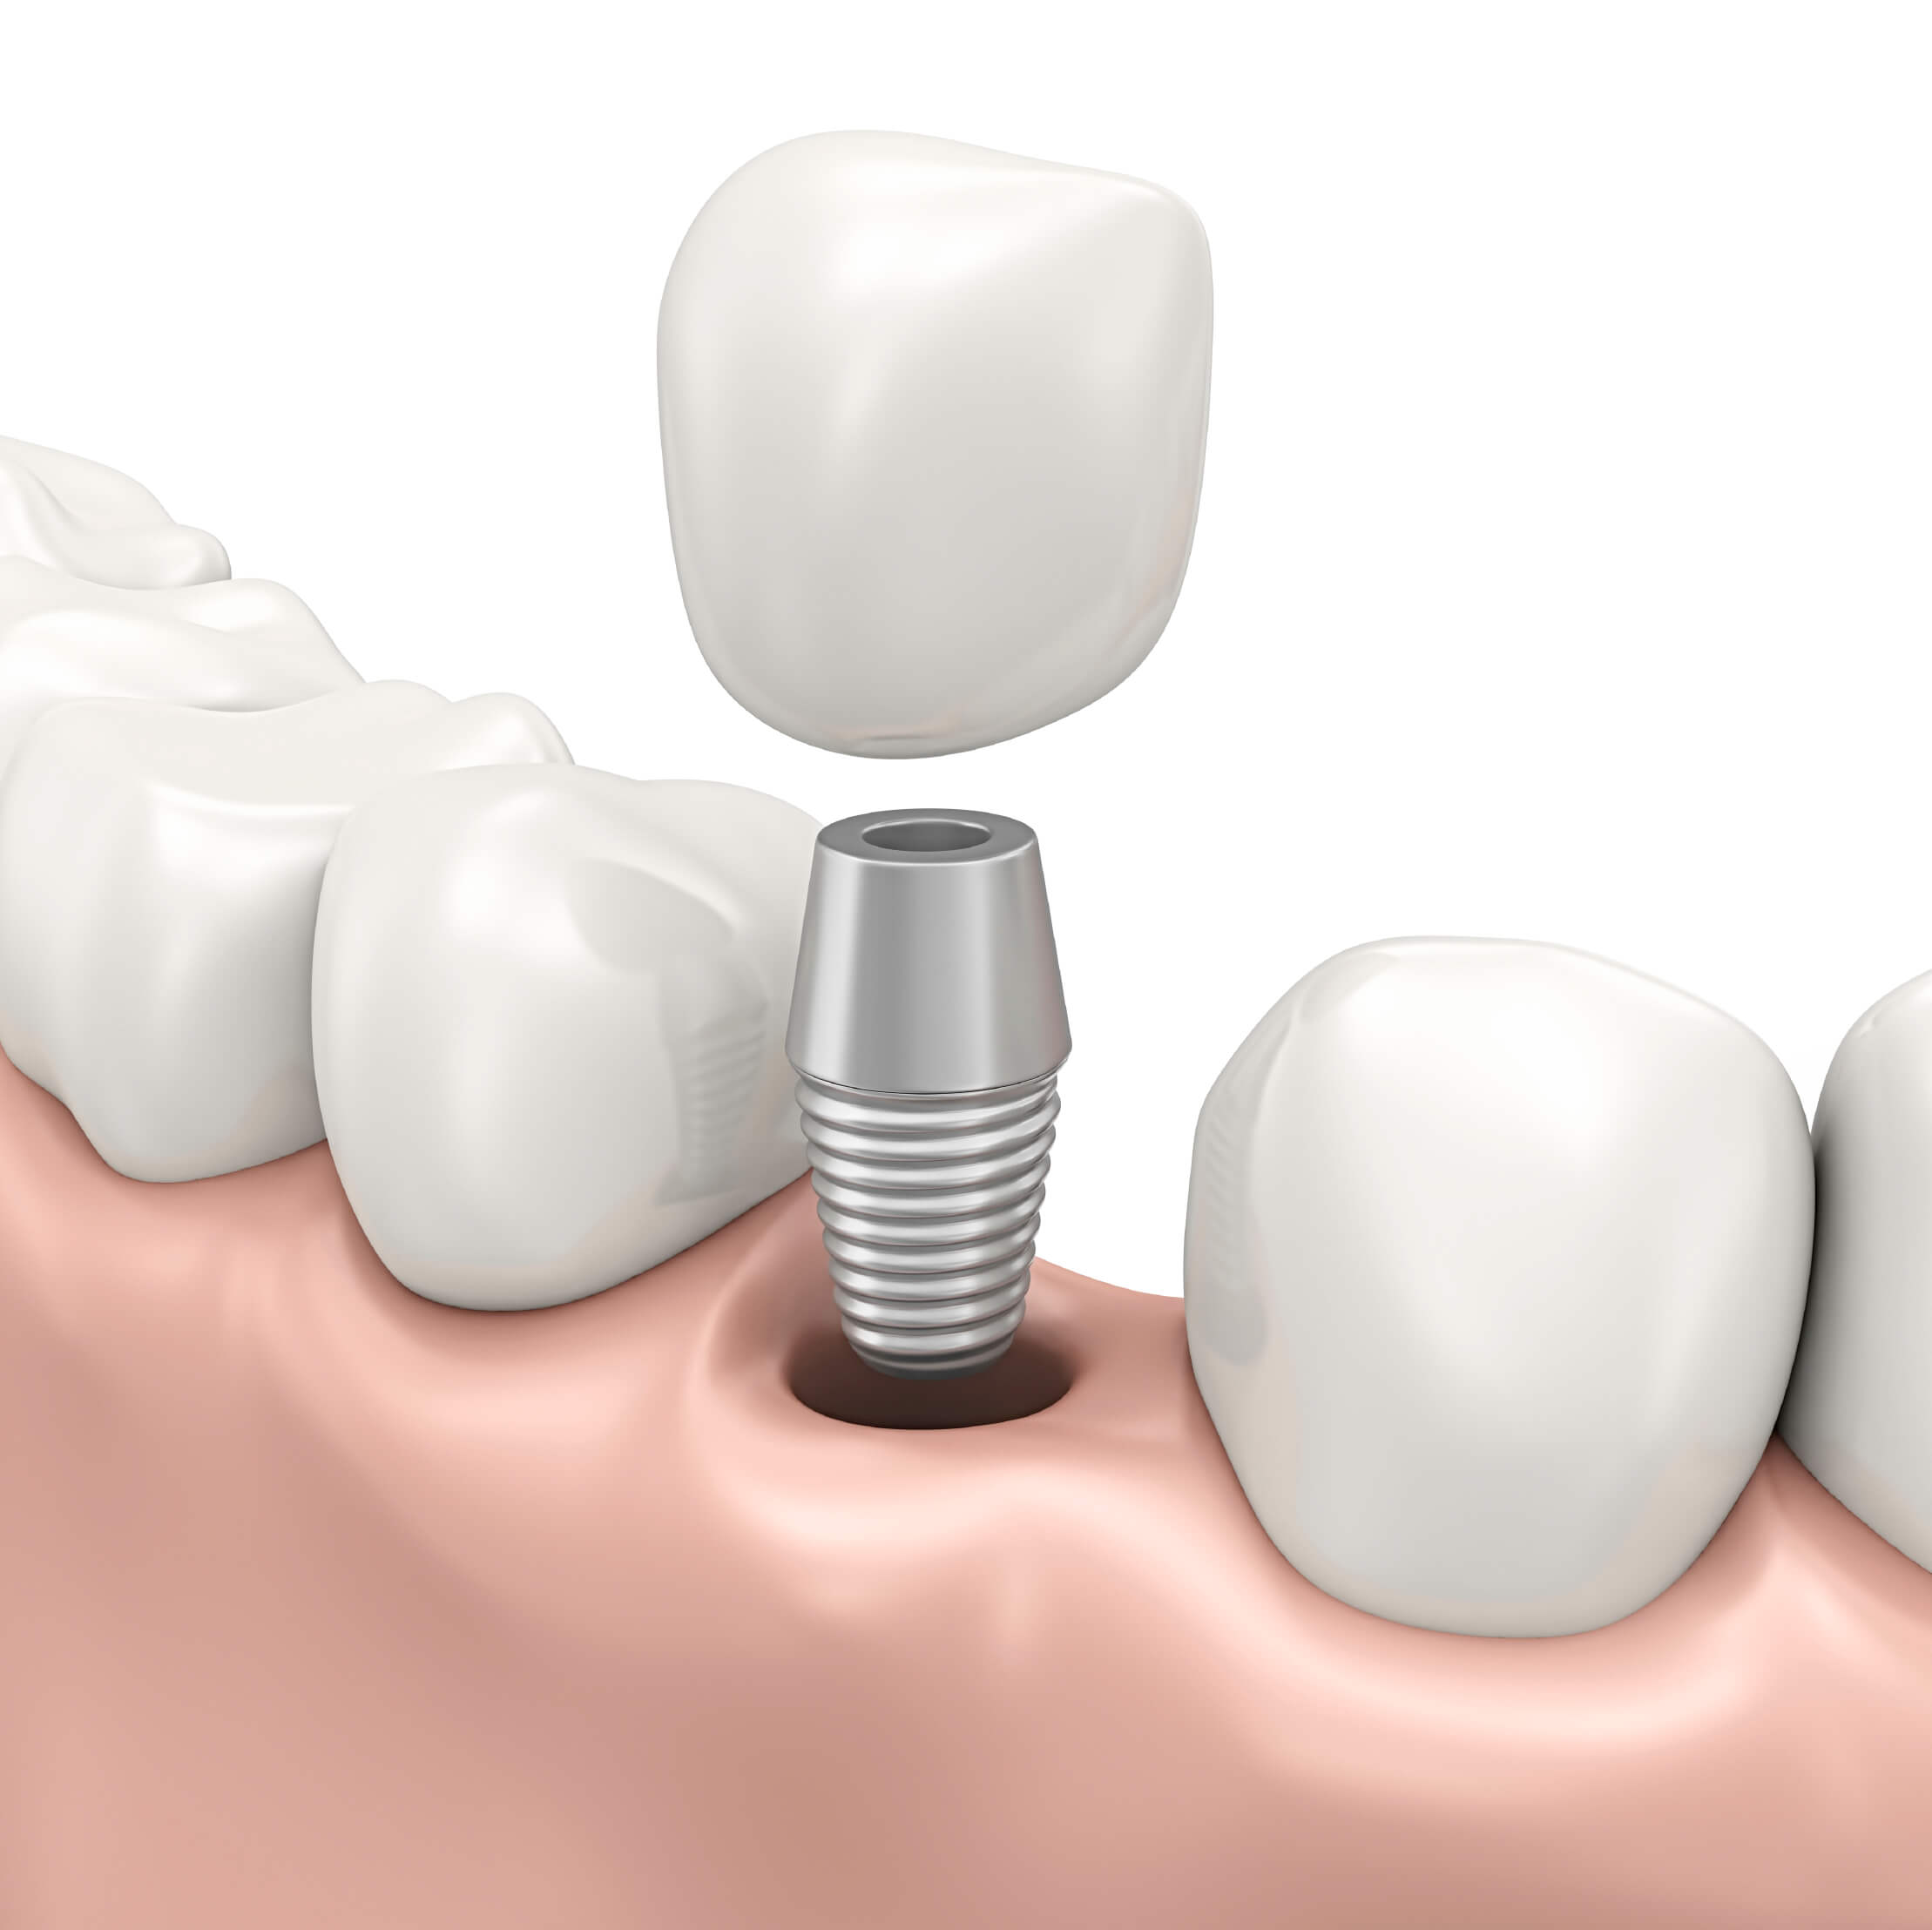 Dental Implants in Linden, NJ 07036